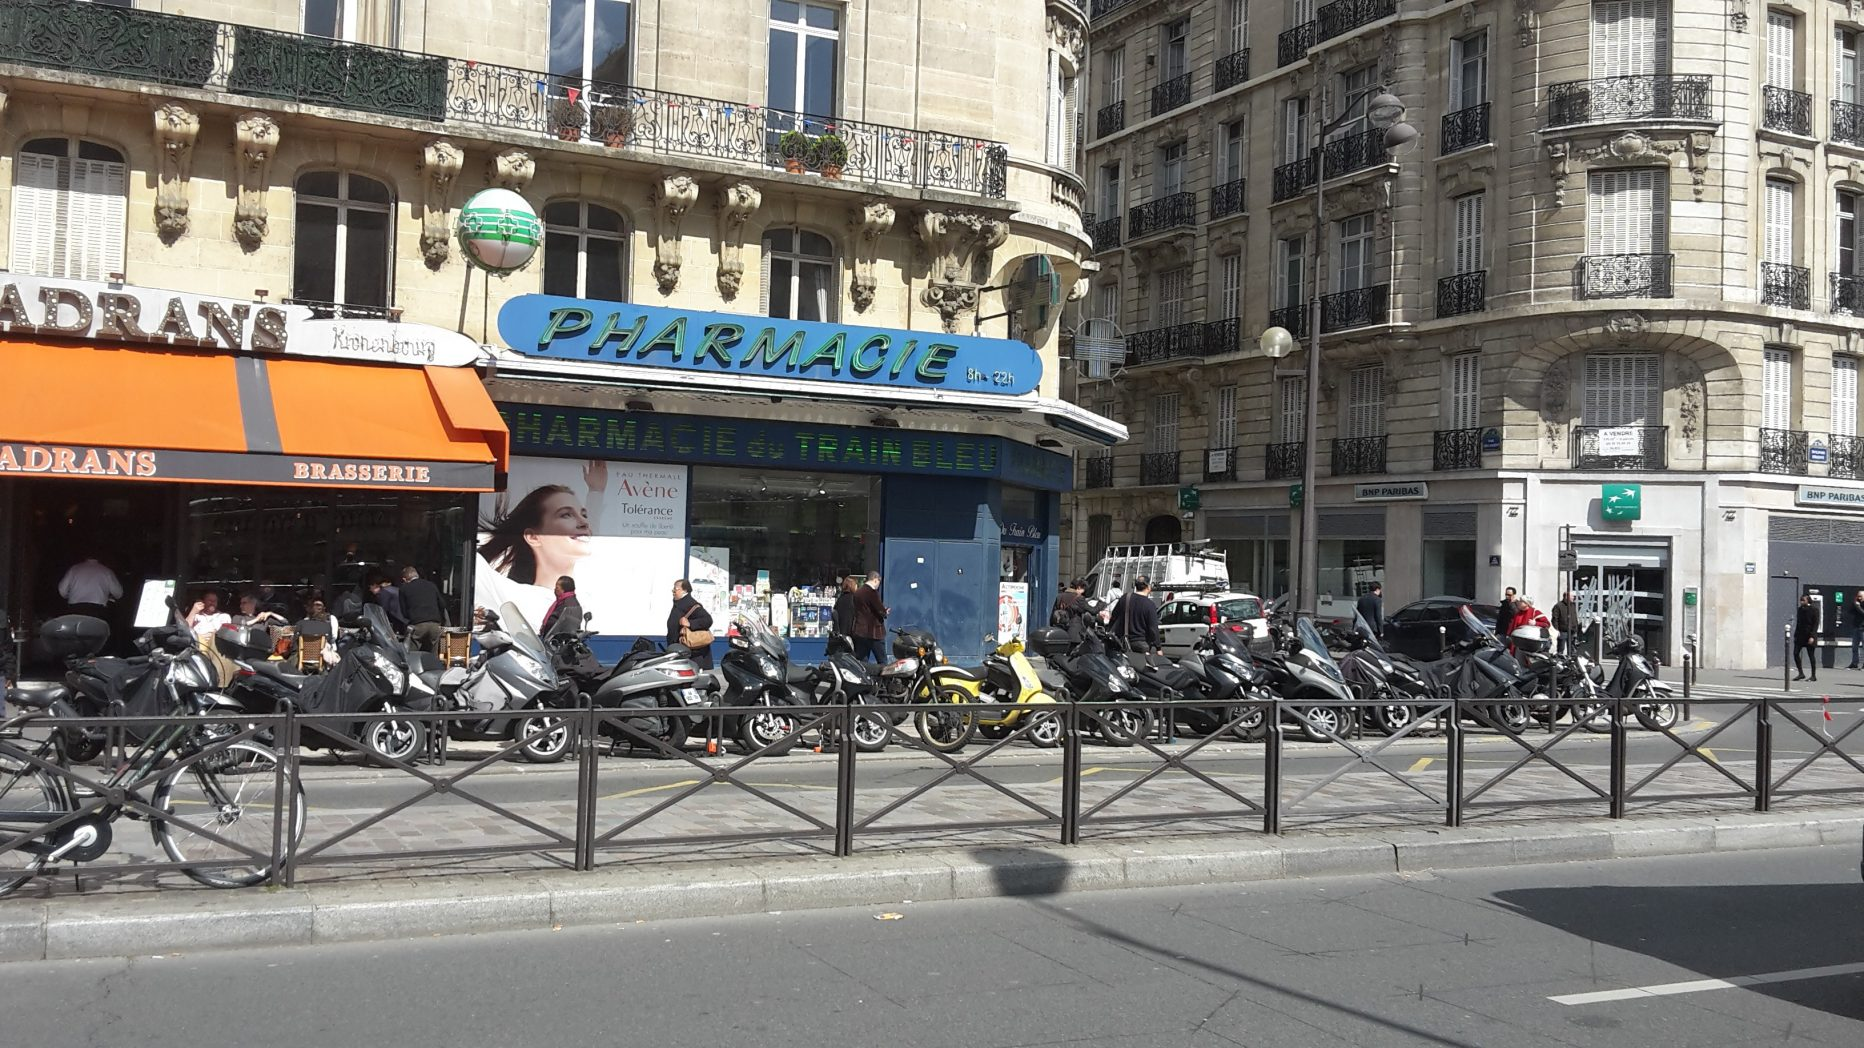 Pharmacie du Train Bleu